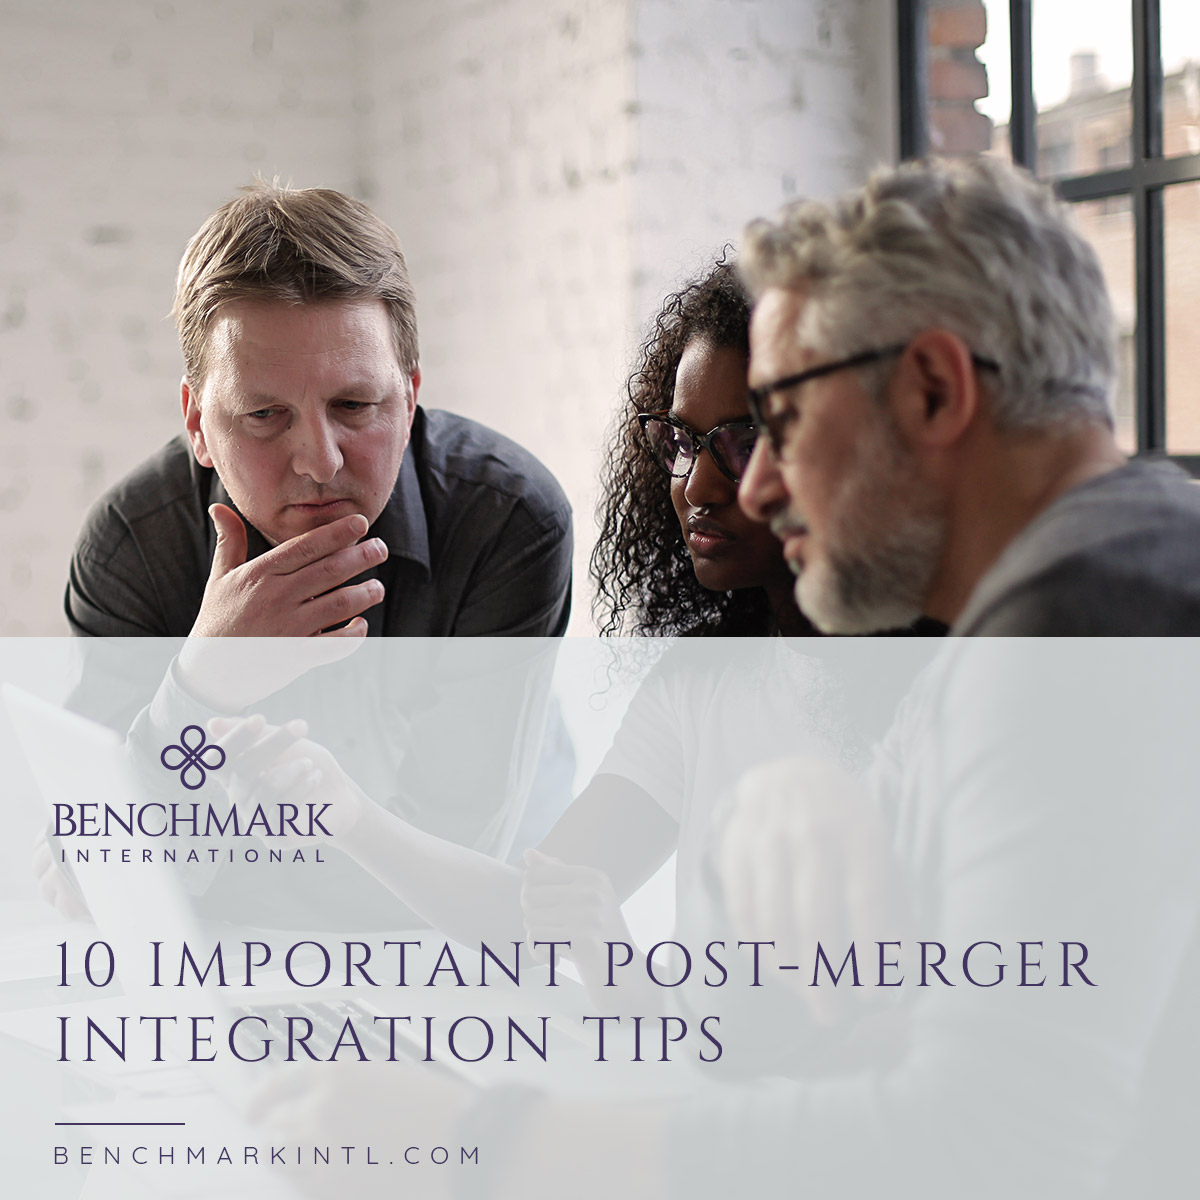 10_Important_Post_Merger_Integration_Tips_Social